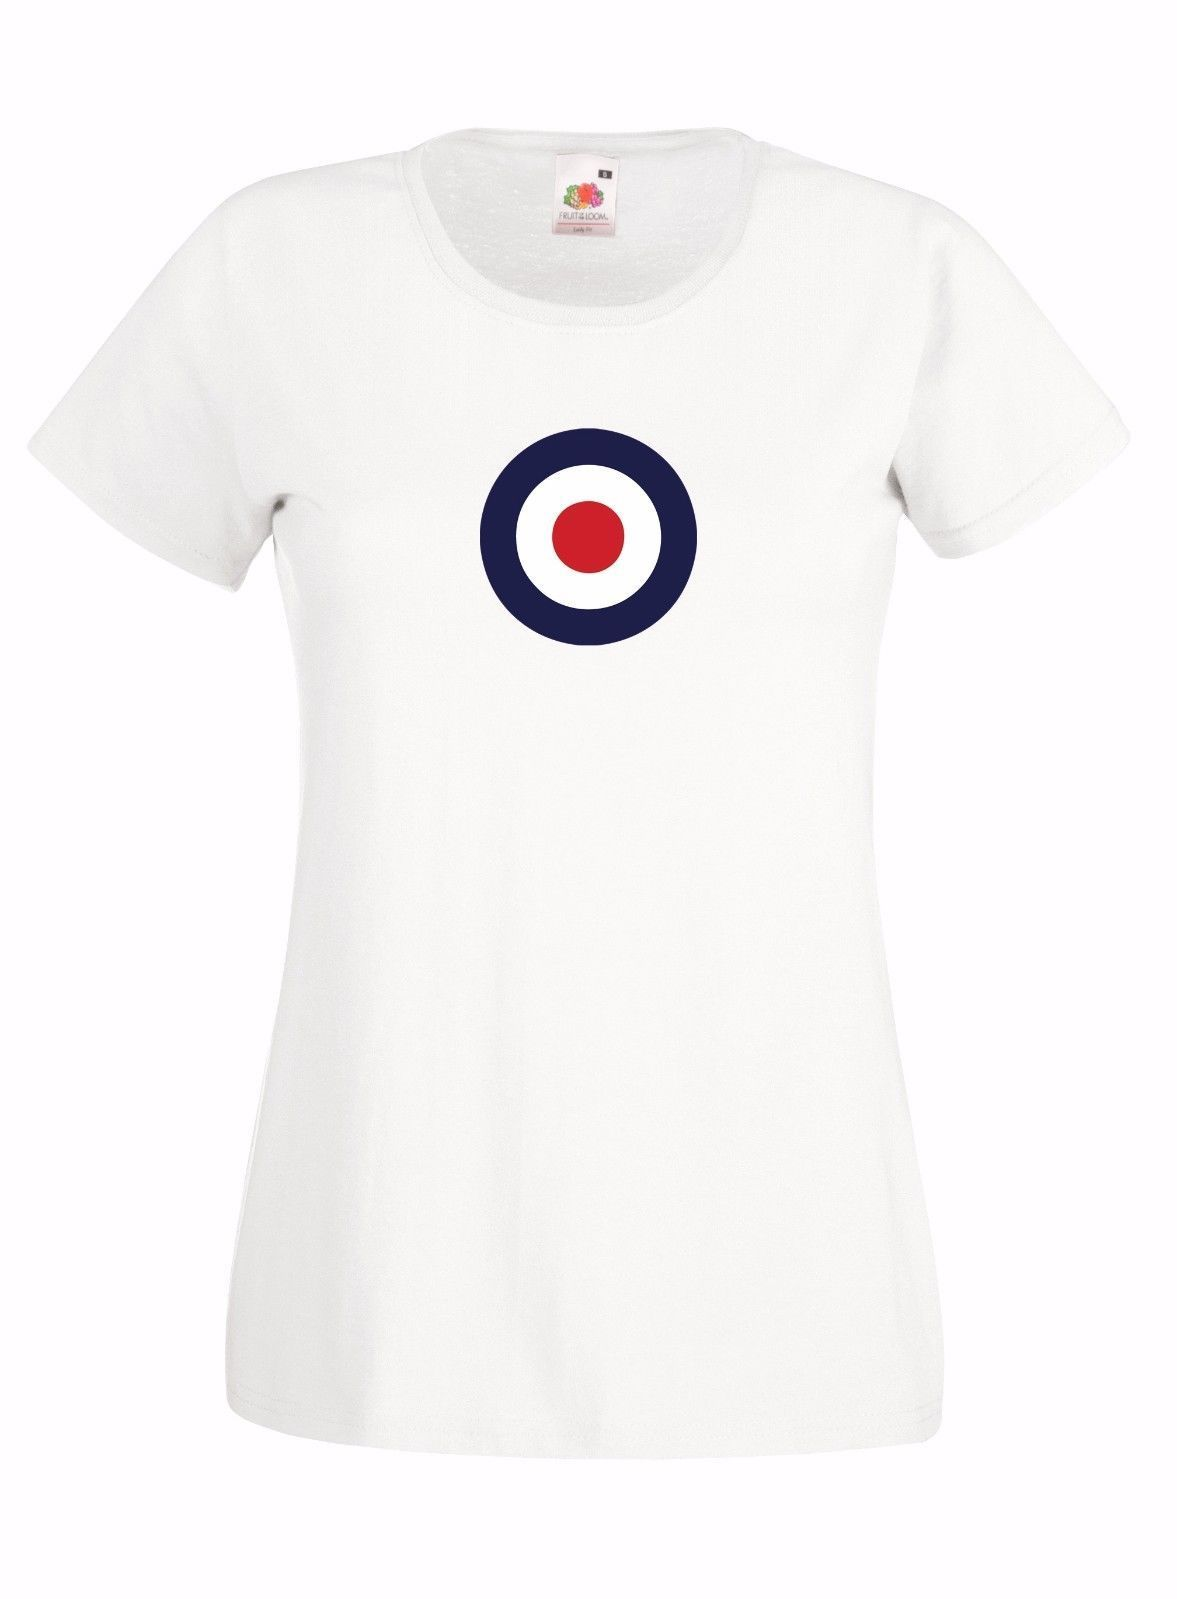 RAF ROUNDEL TARGET INSPIRED STYLE GRAPHIC HIGH QUALITY LADIES SKINNY T-SHIRT